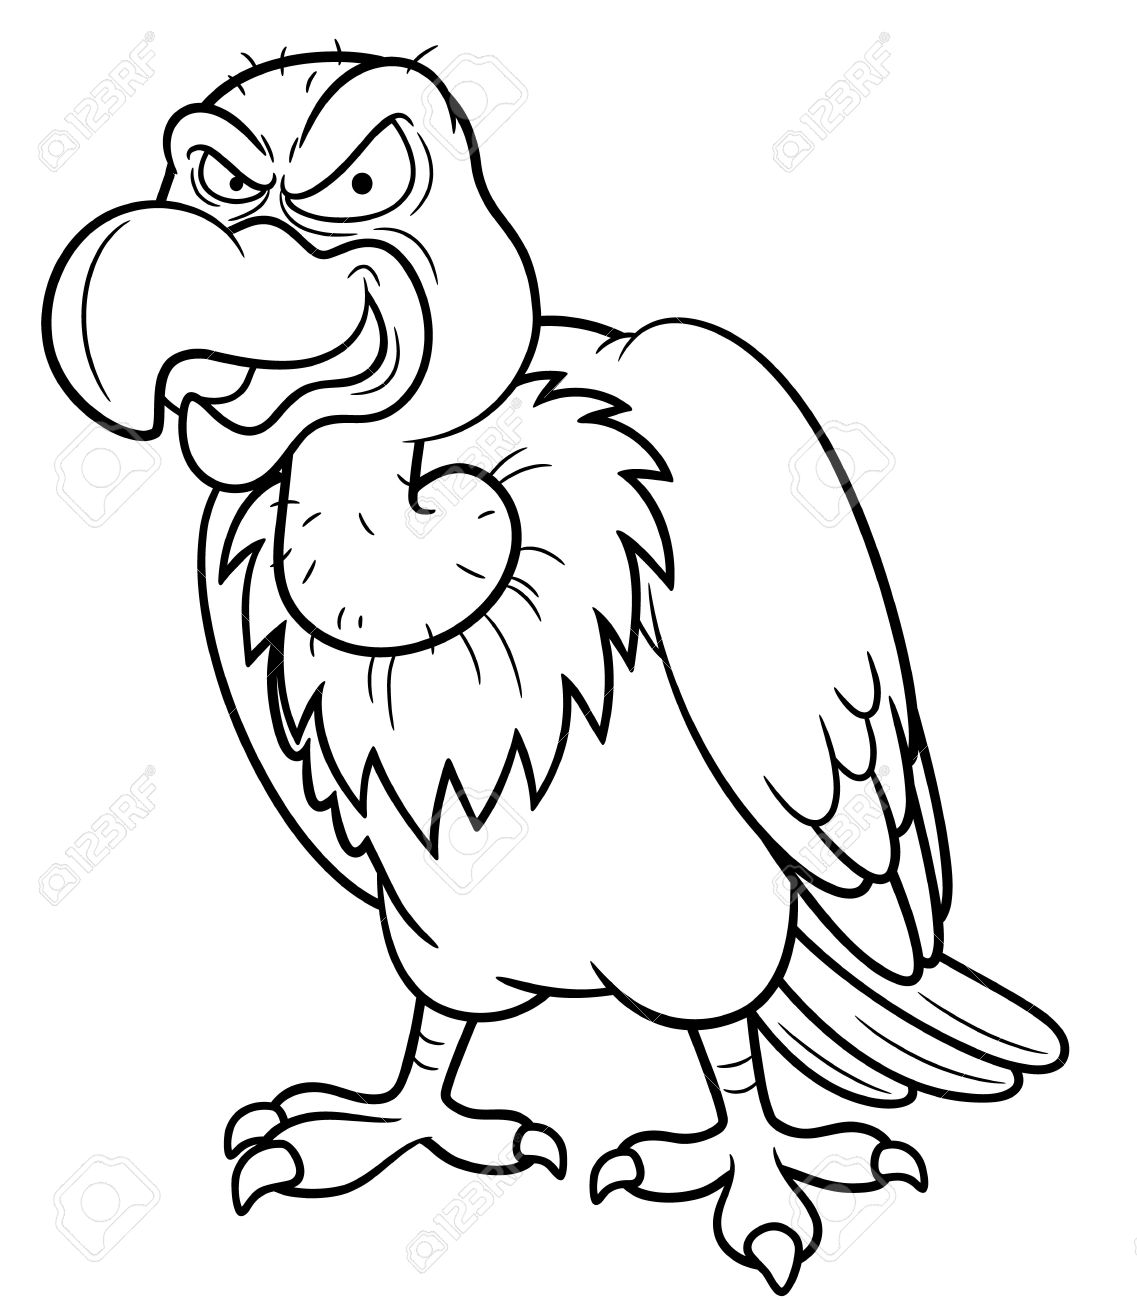 -vulture-Coloring-book-Stock-Vector